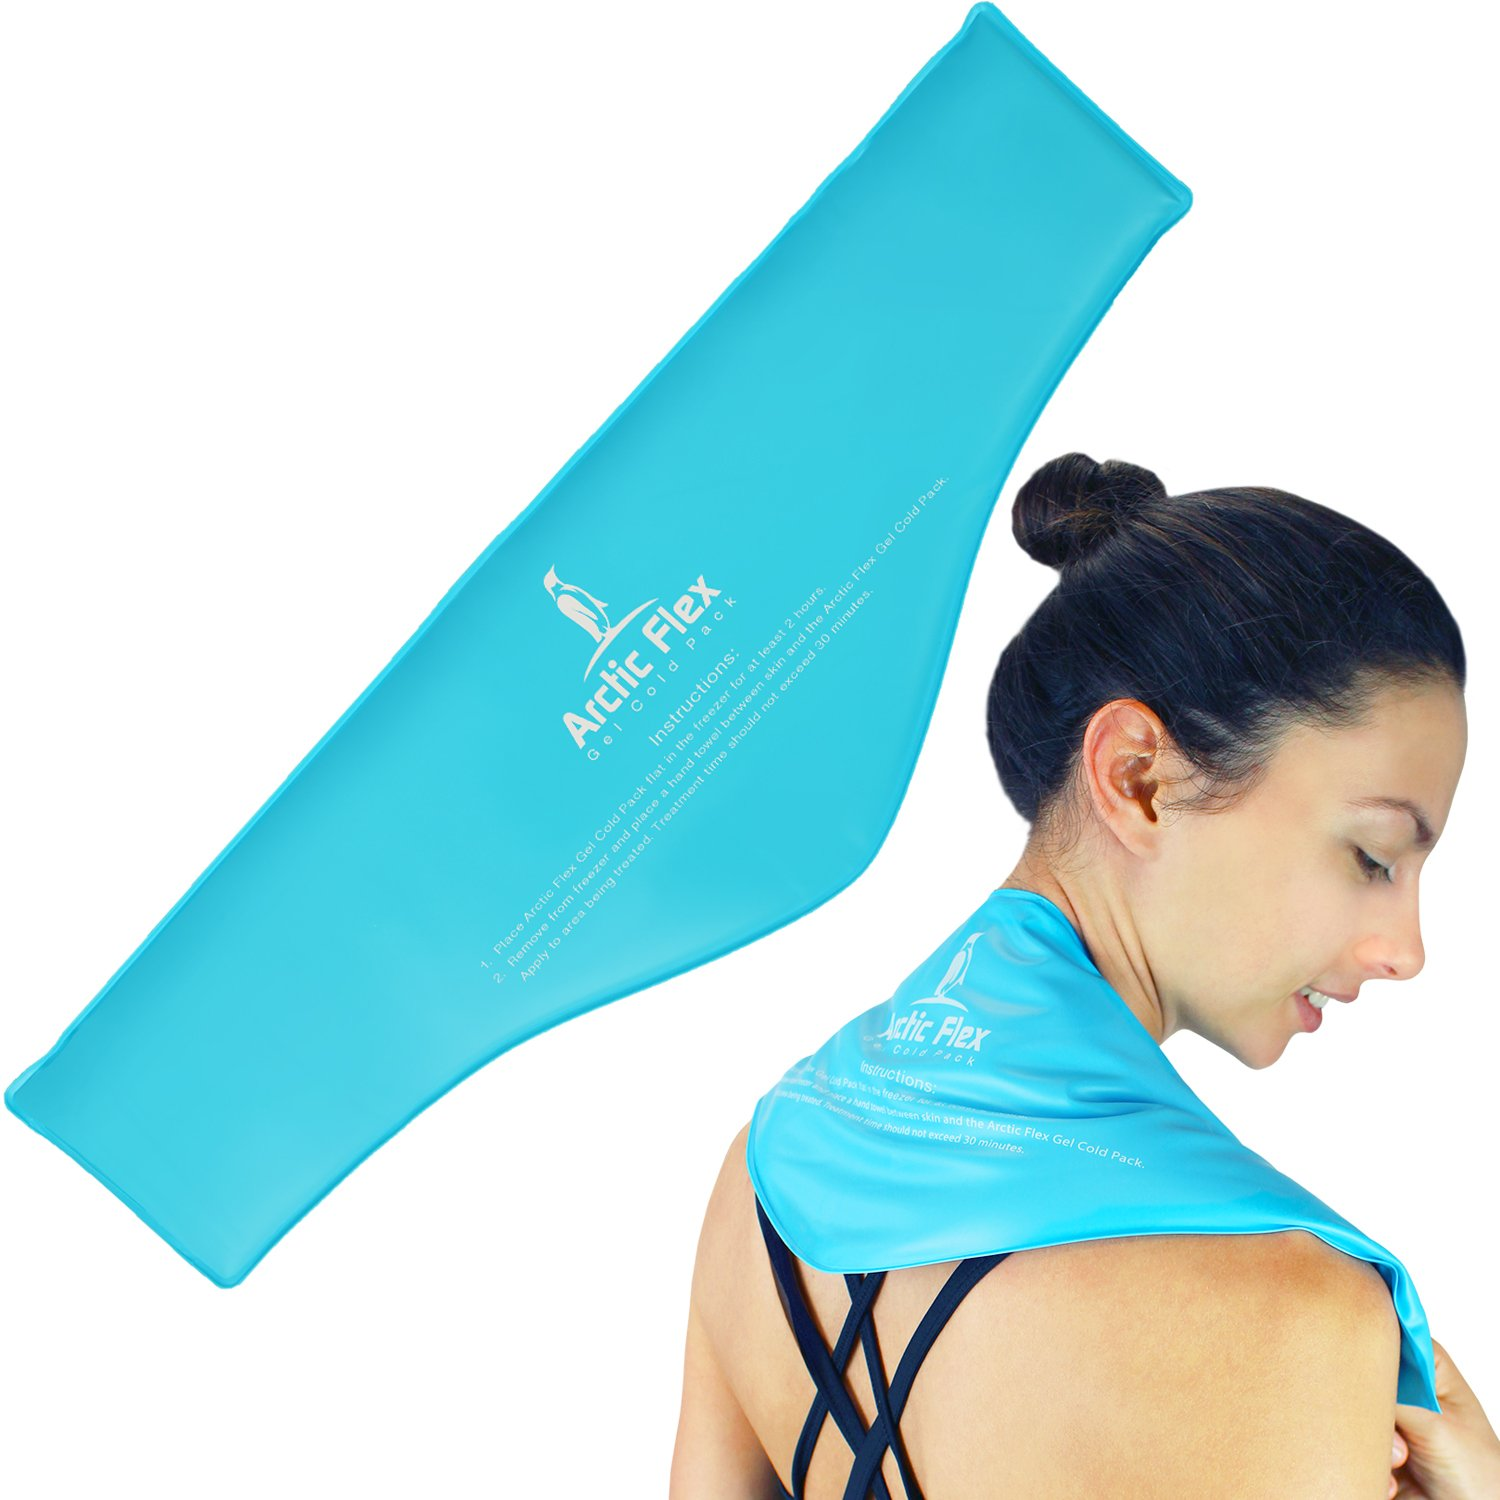 Neck Ice Pack by Arctic Flex - Cold Compress Therapy Wrap - Cool, Reusable Medical Freezer Gel Pad for Swelling, Injuries, Headache, Cooler - Flexible, Soft & Instant by Arctic Flex